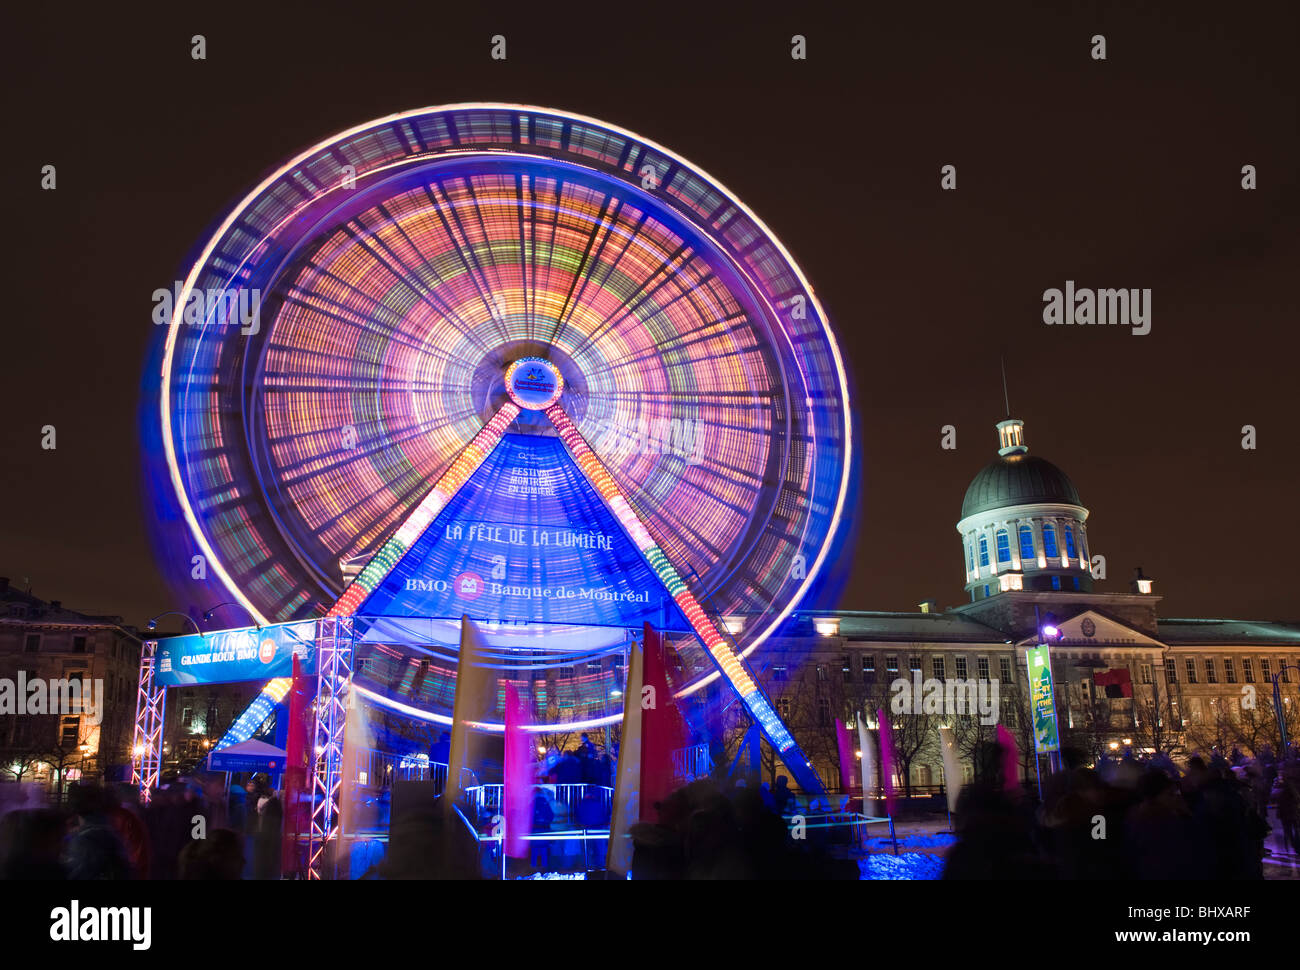 BMO ferris wheel with Bonsecours Market in the background. Old Montreal, Quebec, Canada. - Stock Image